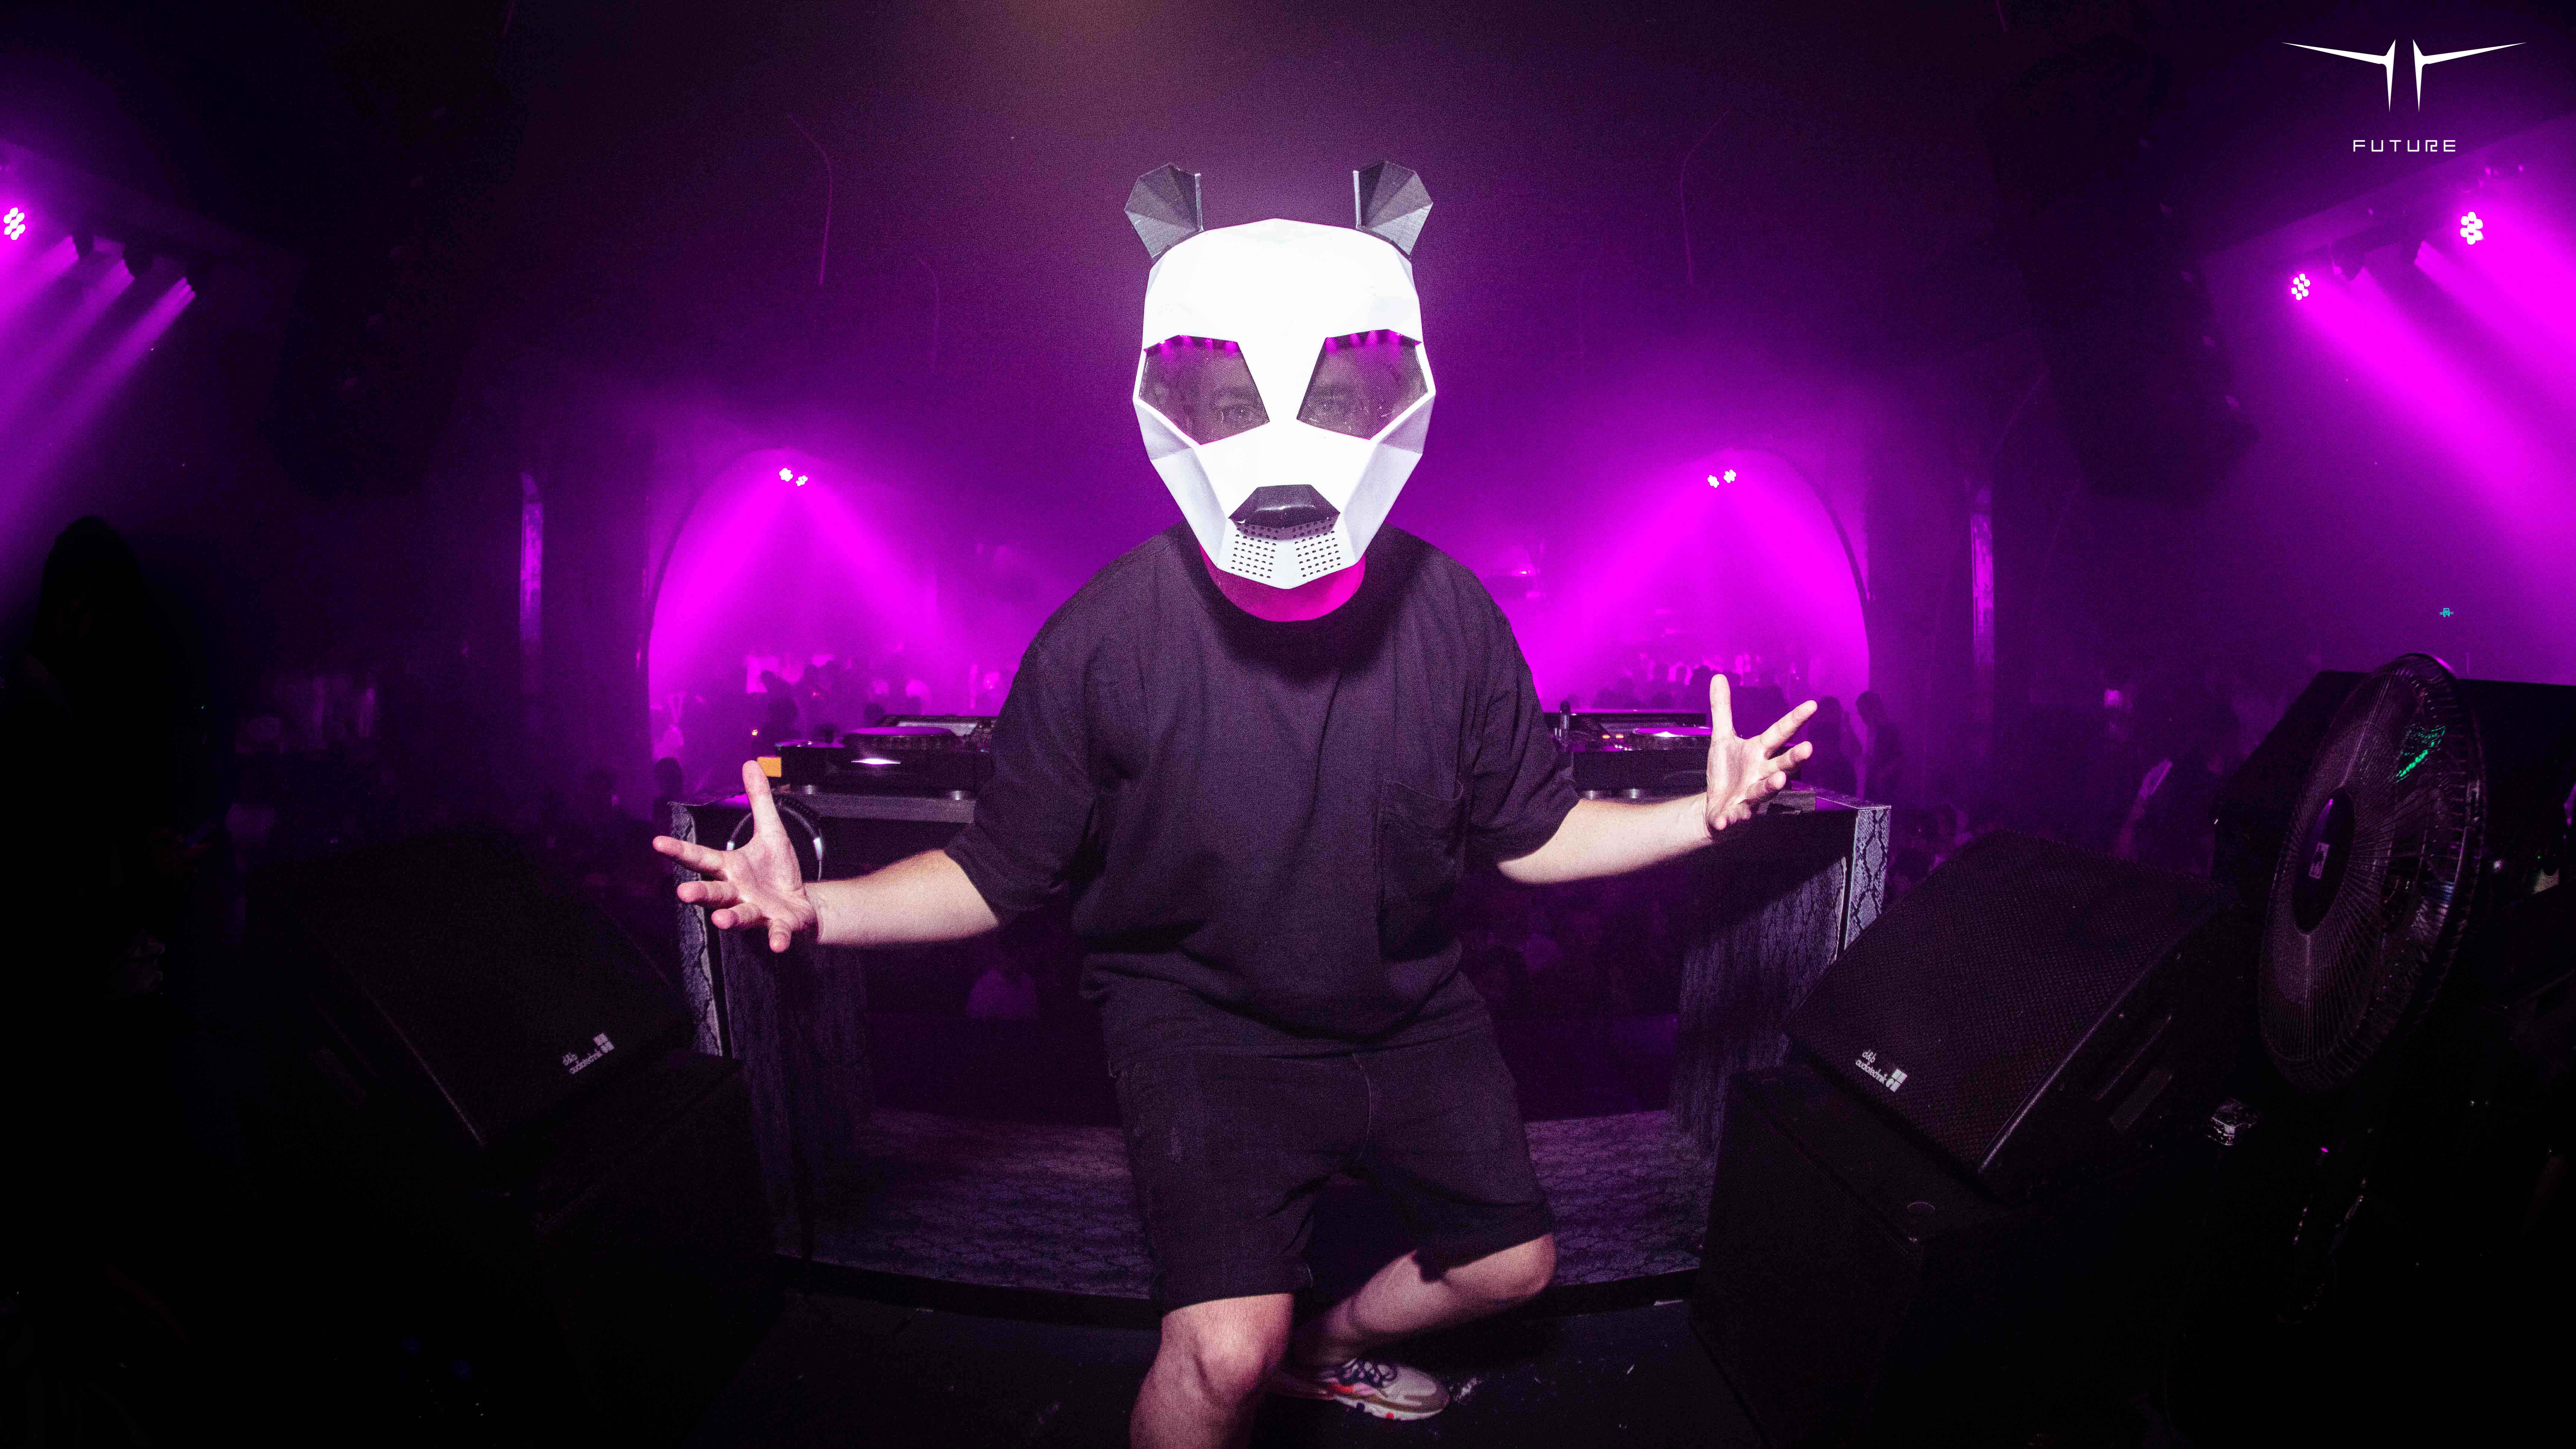 Pink Panda/Club Future Nanjing China/3 July 2020